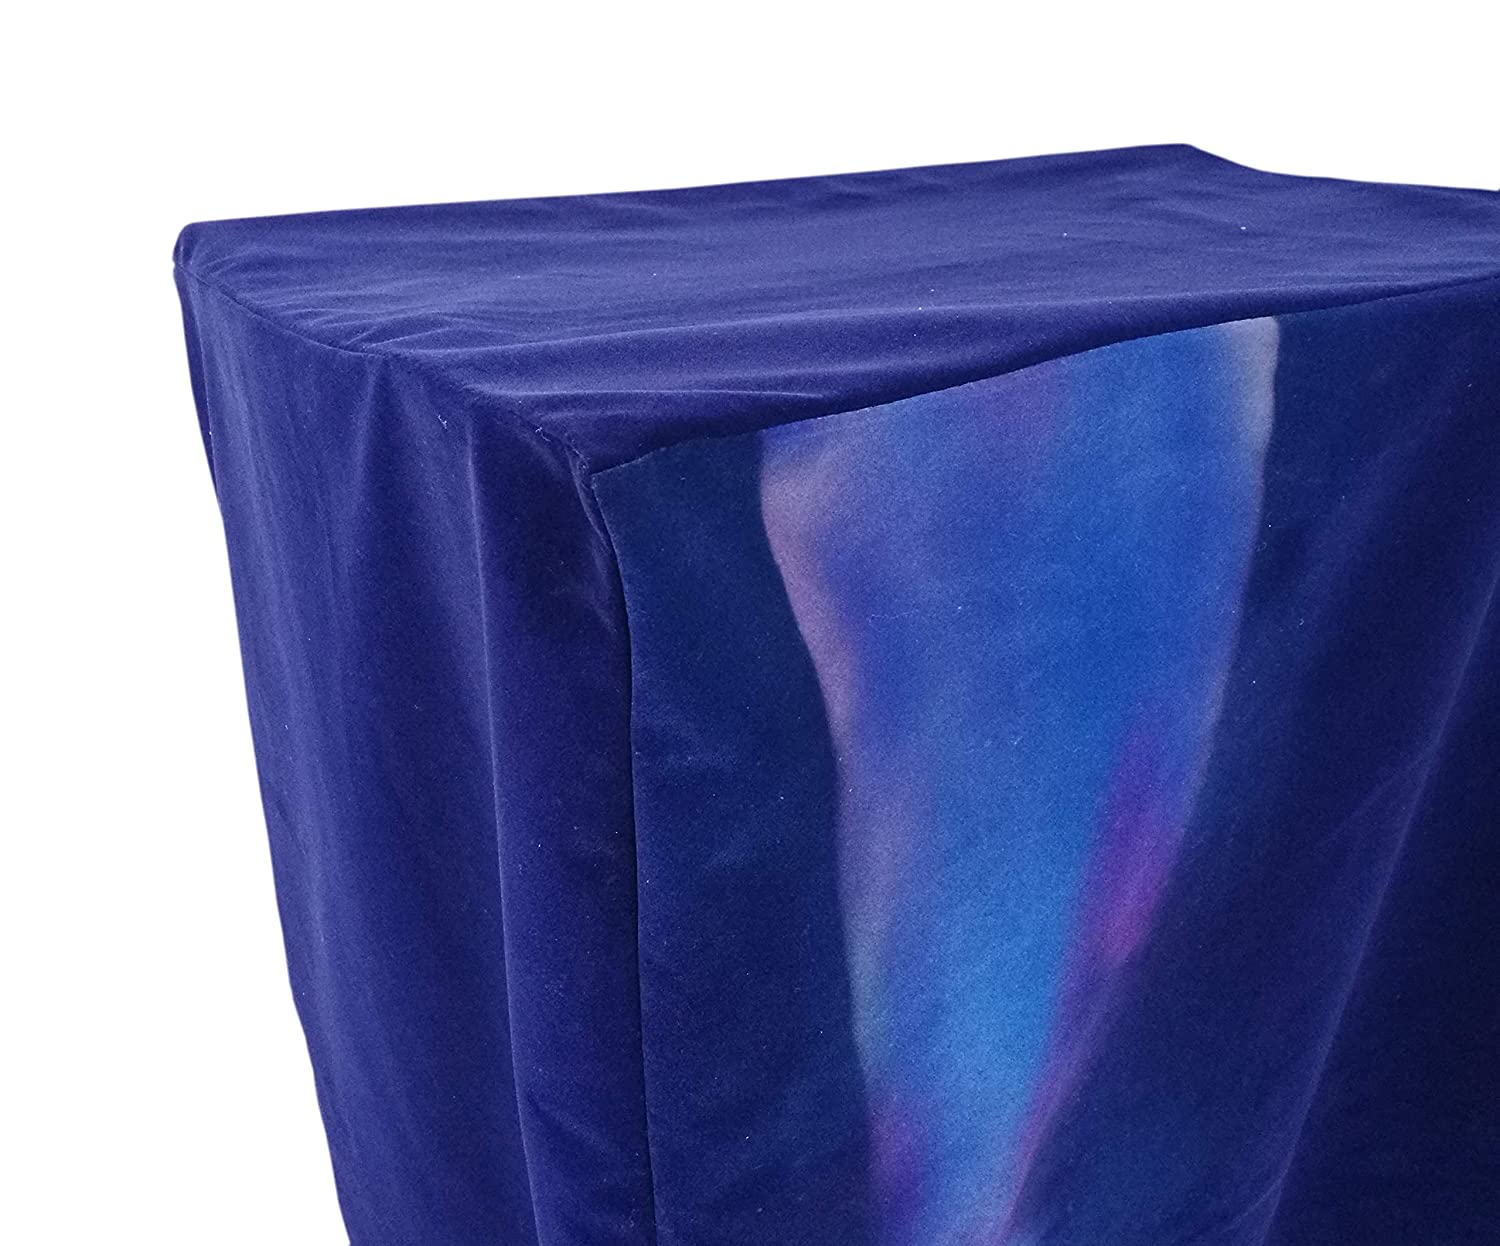 FixtureDisplays Podium Protective Cover Pulpit Cover Lectern Padded Cover 24.2W x 49H x 17.7D 1803-8-BLUE